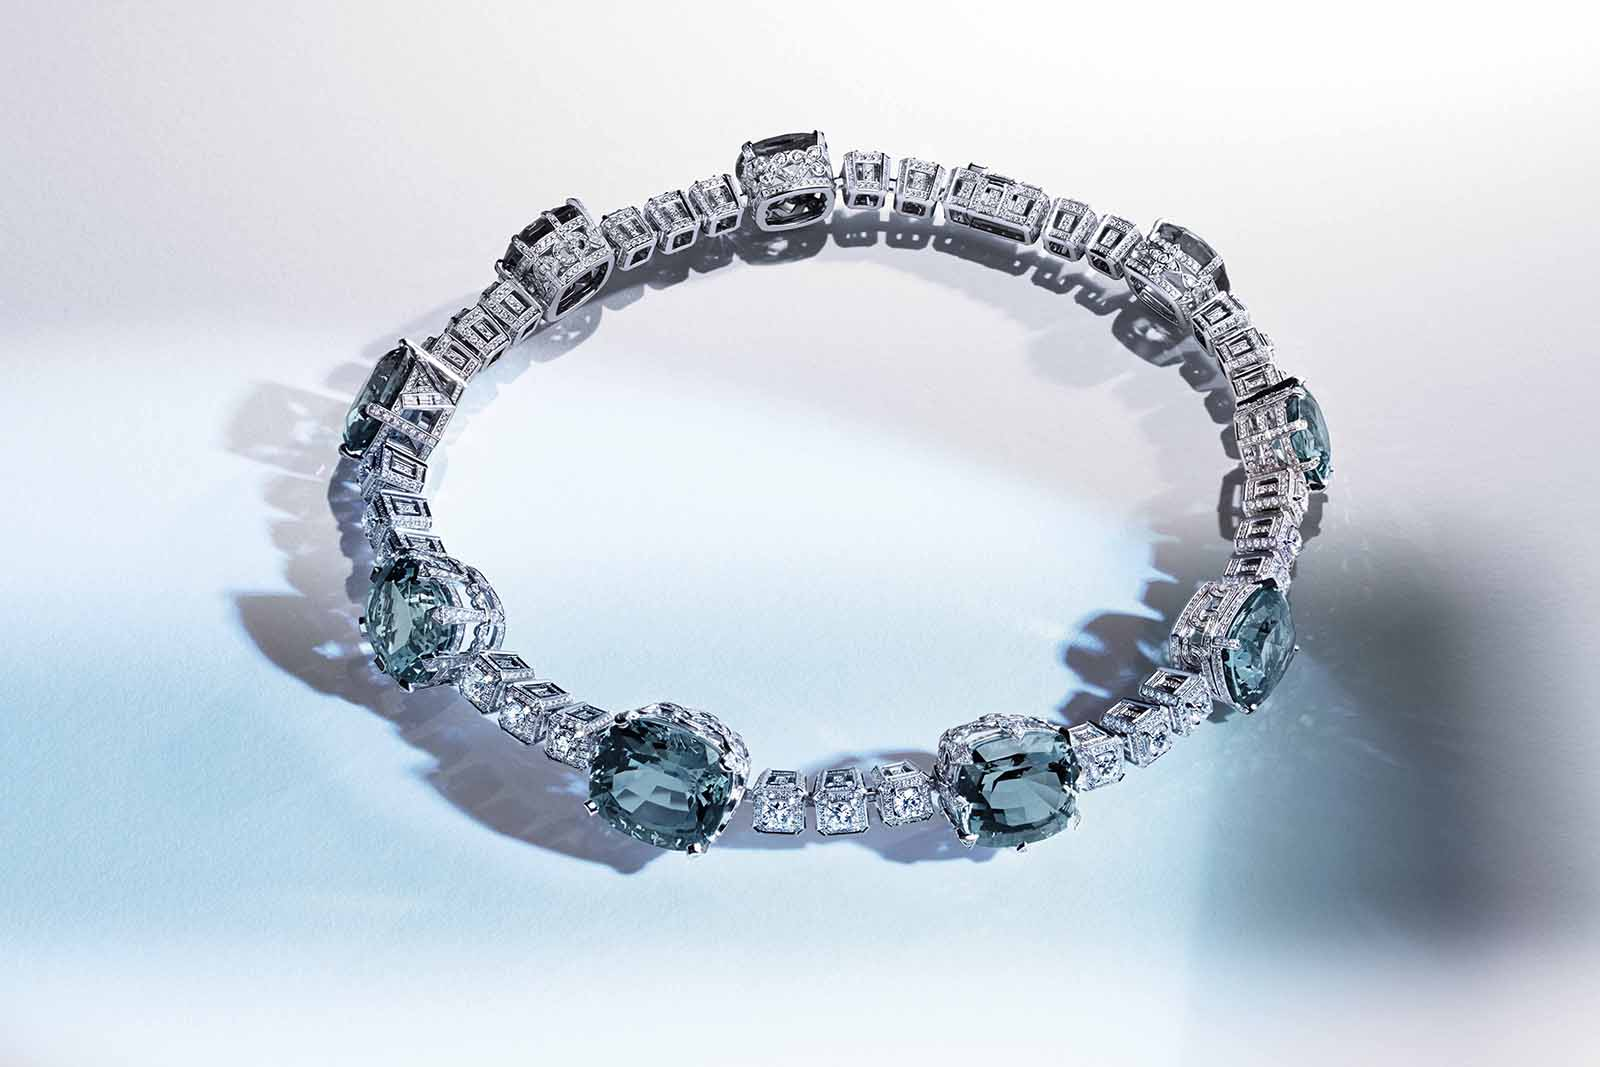 Louis Vuitton 'Riders of the Knights' collection 'La Reine' necklace with 152.83ct aqaumarine and diamonds in white gold